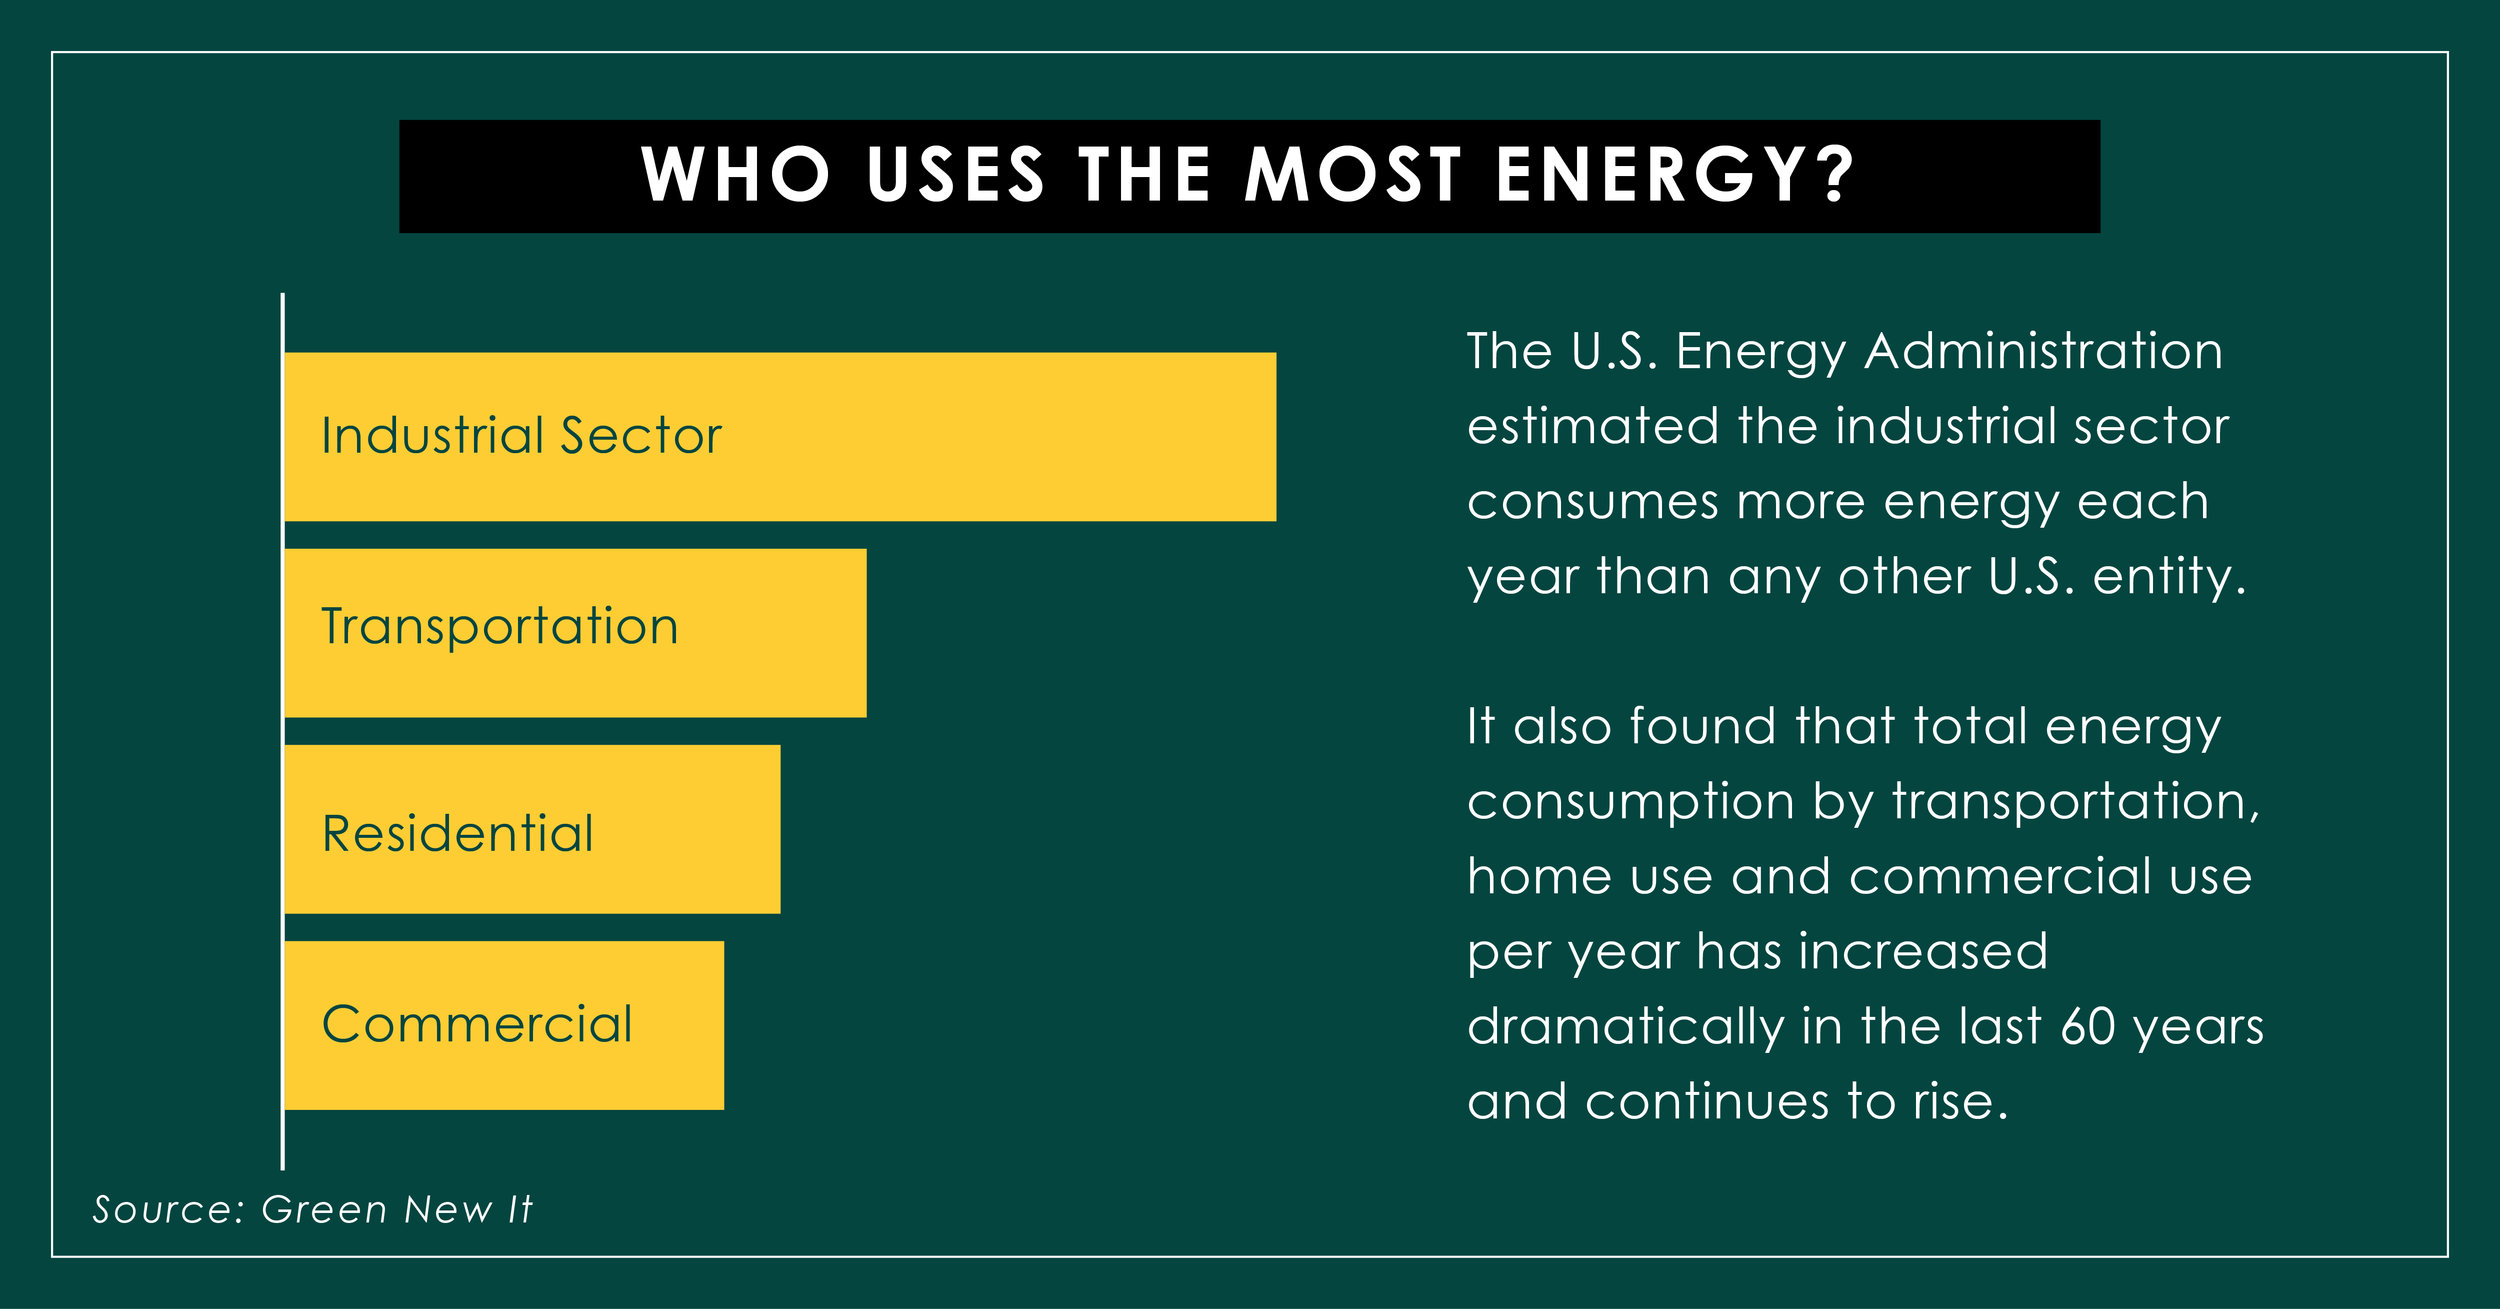 WHO USES THE MOST ENERGY-01.jpg